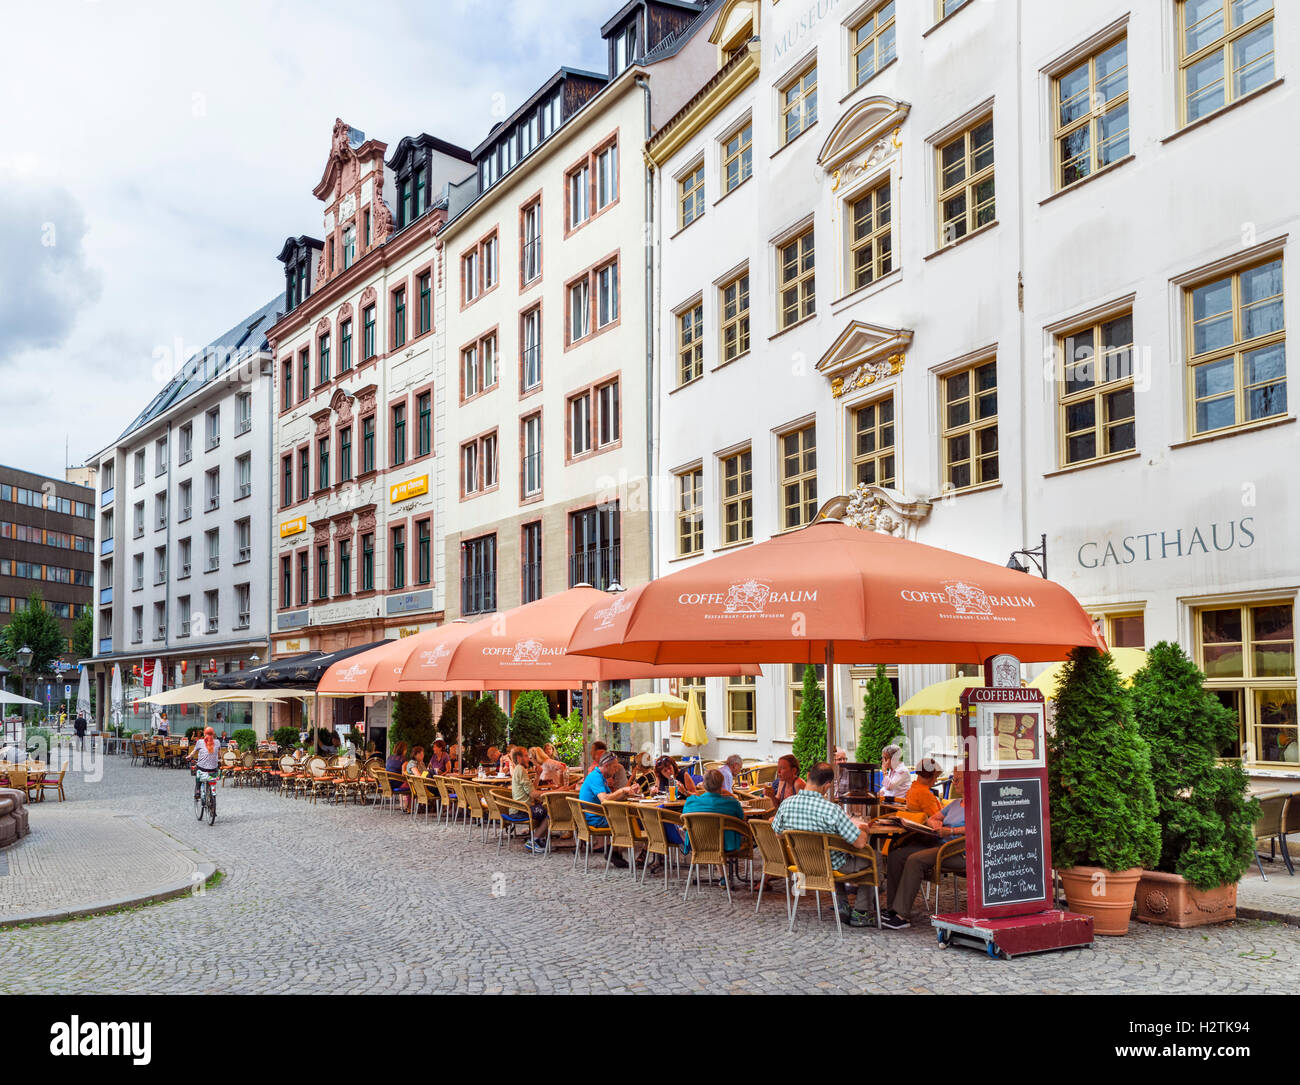 restaurant zum see stock photos restaurant zum see stock images alamy. Black Bedroom Furniture Sets. Home Design Ideas